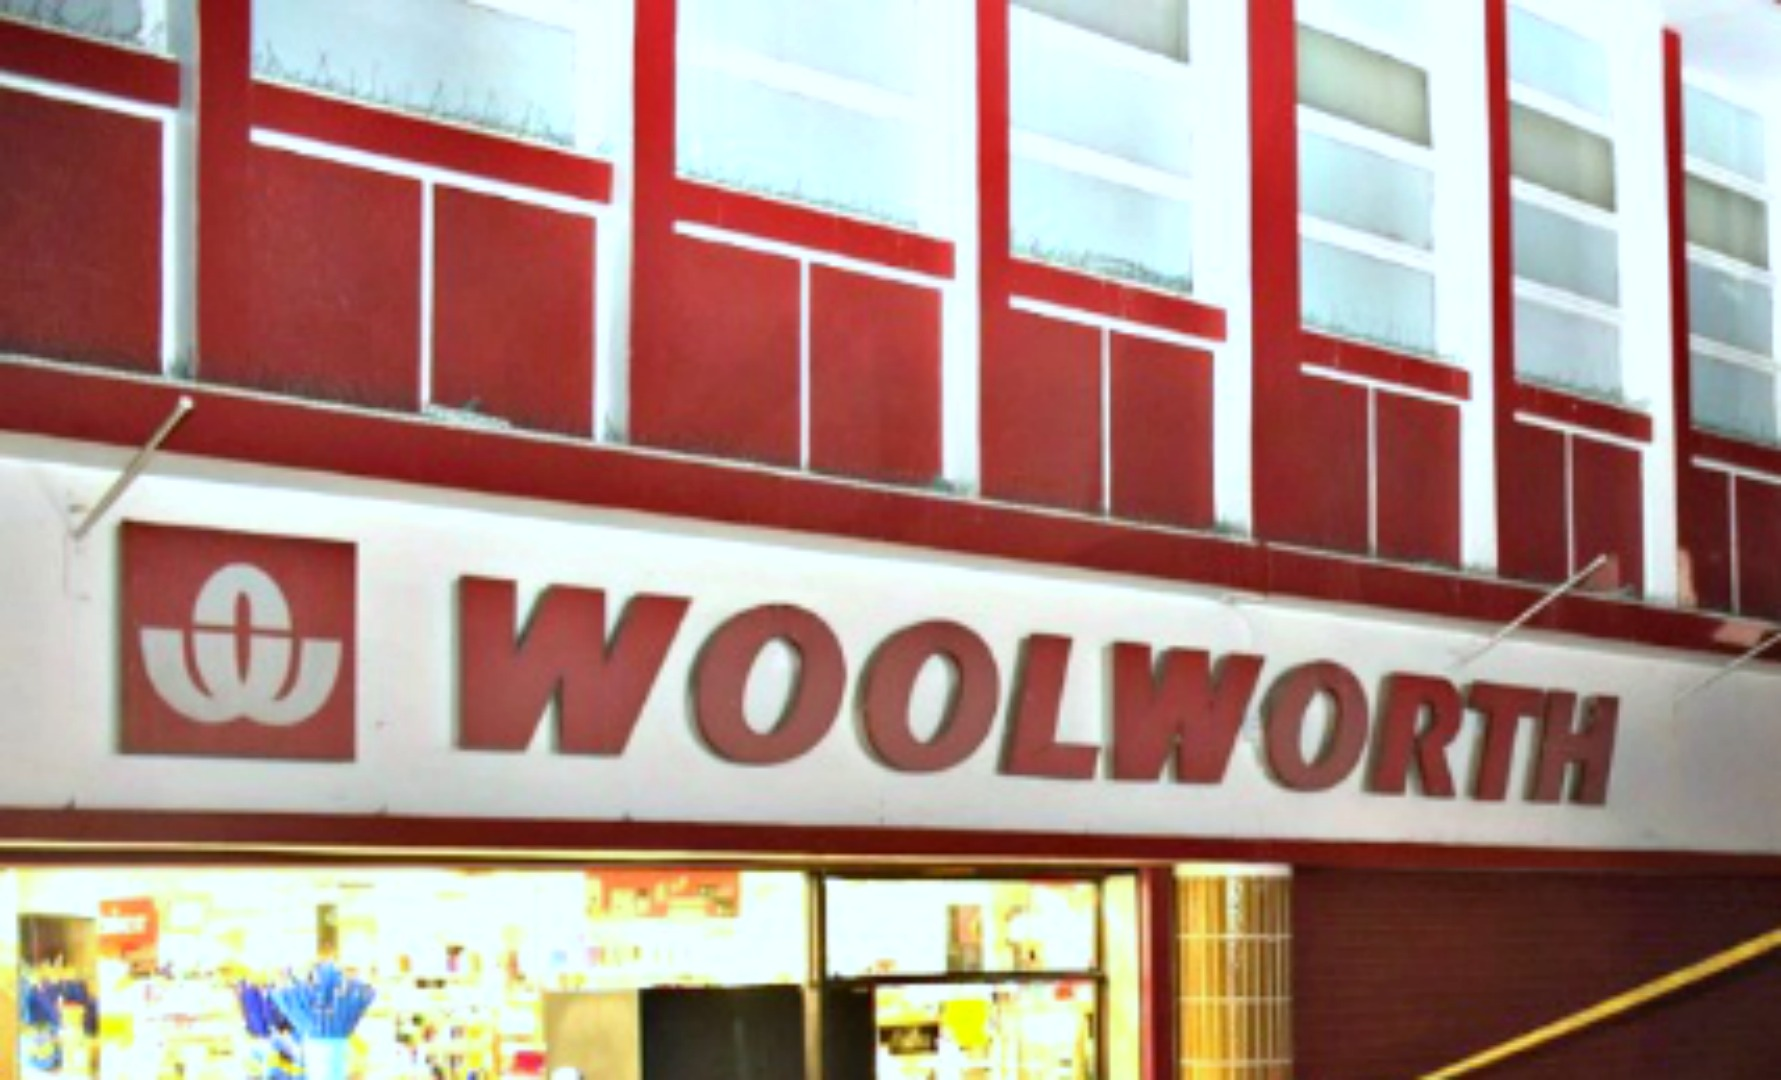 Woolworth located in Bridgetown.